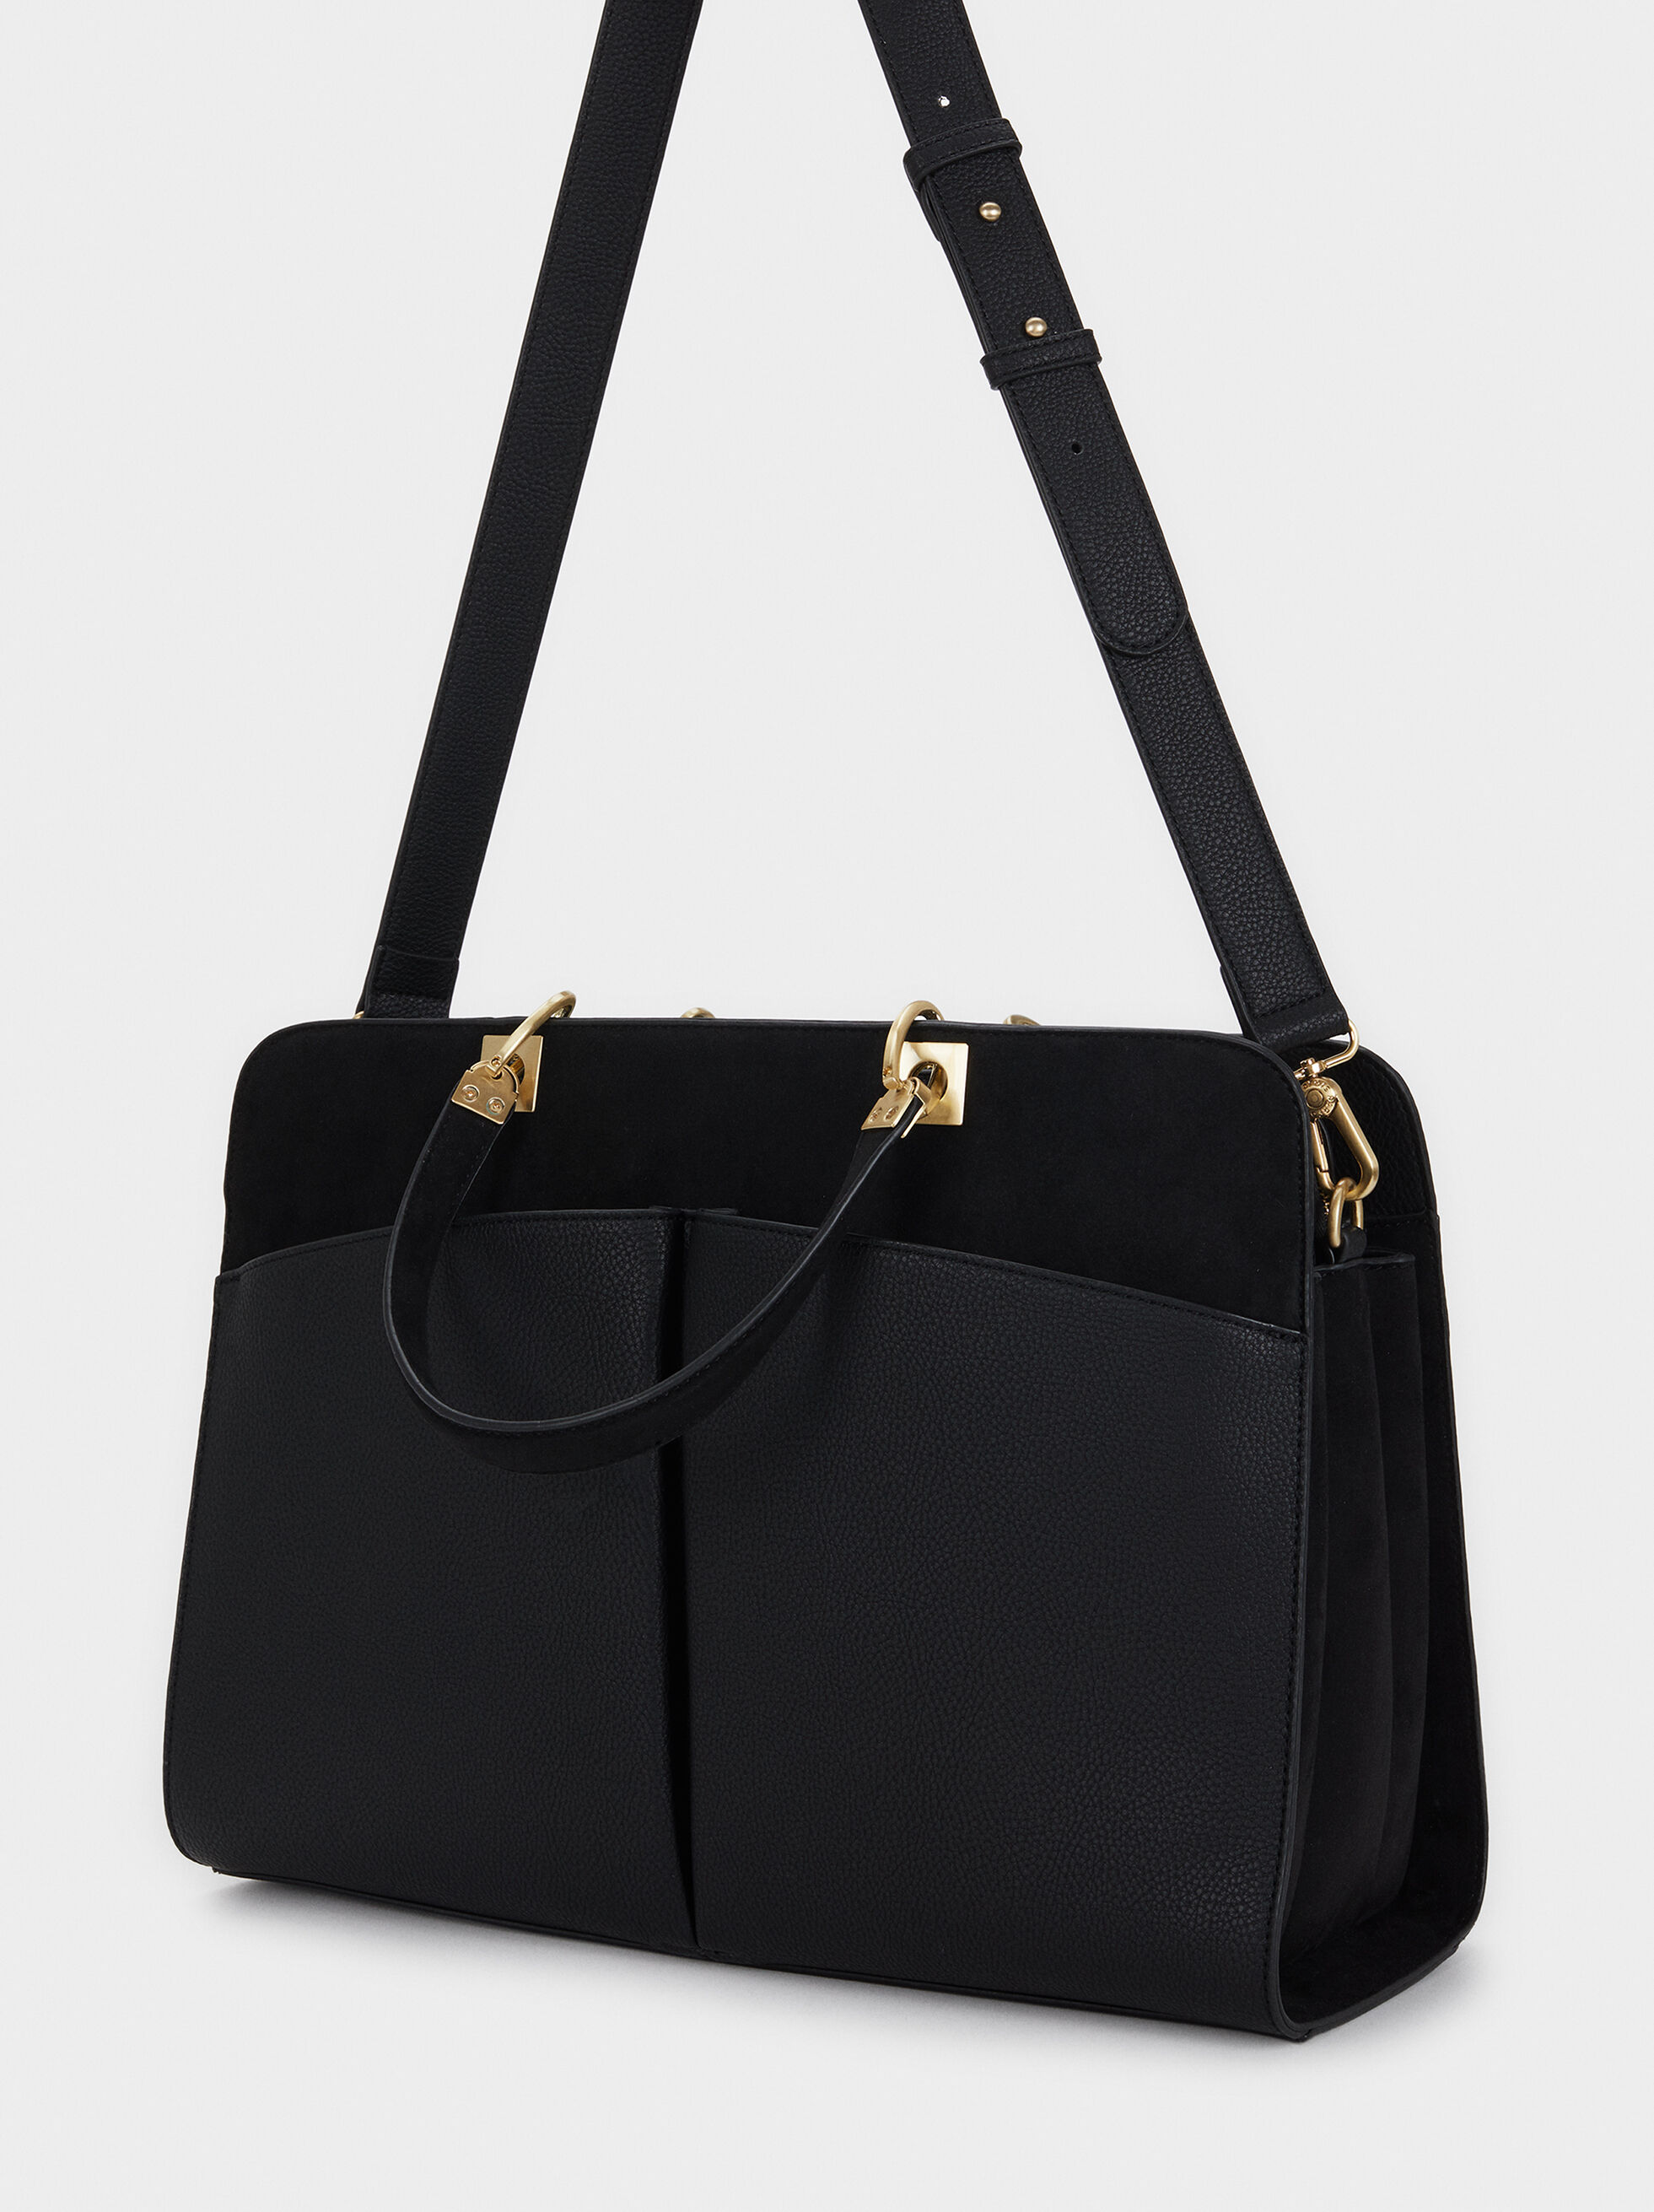 Briefcase With An Inner Pocket, Black, hi-res